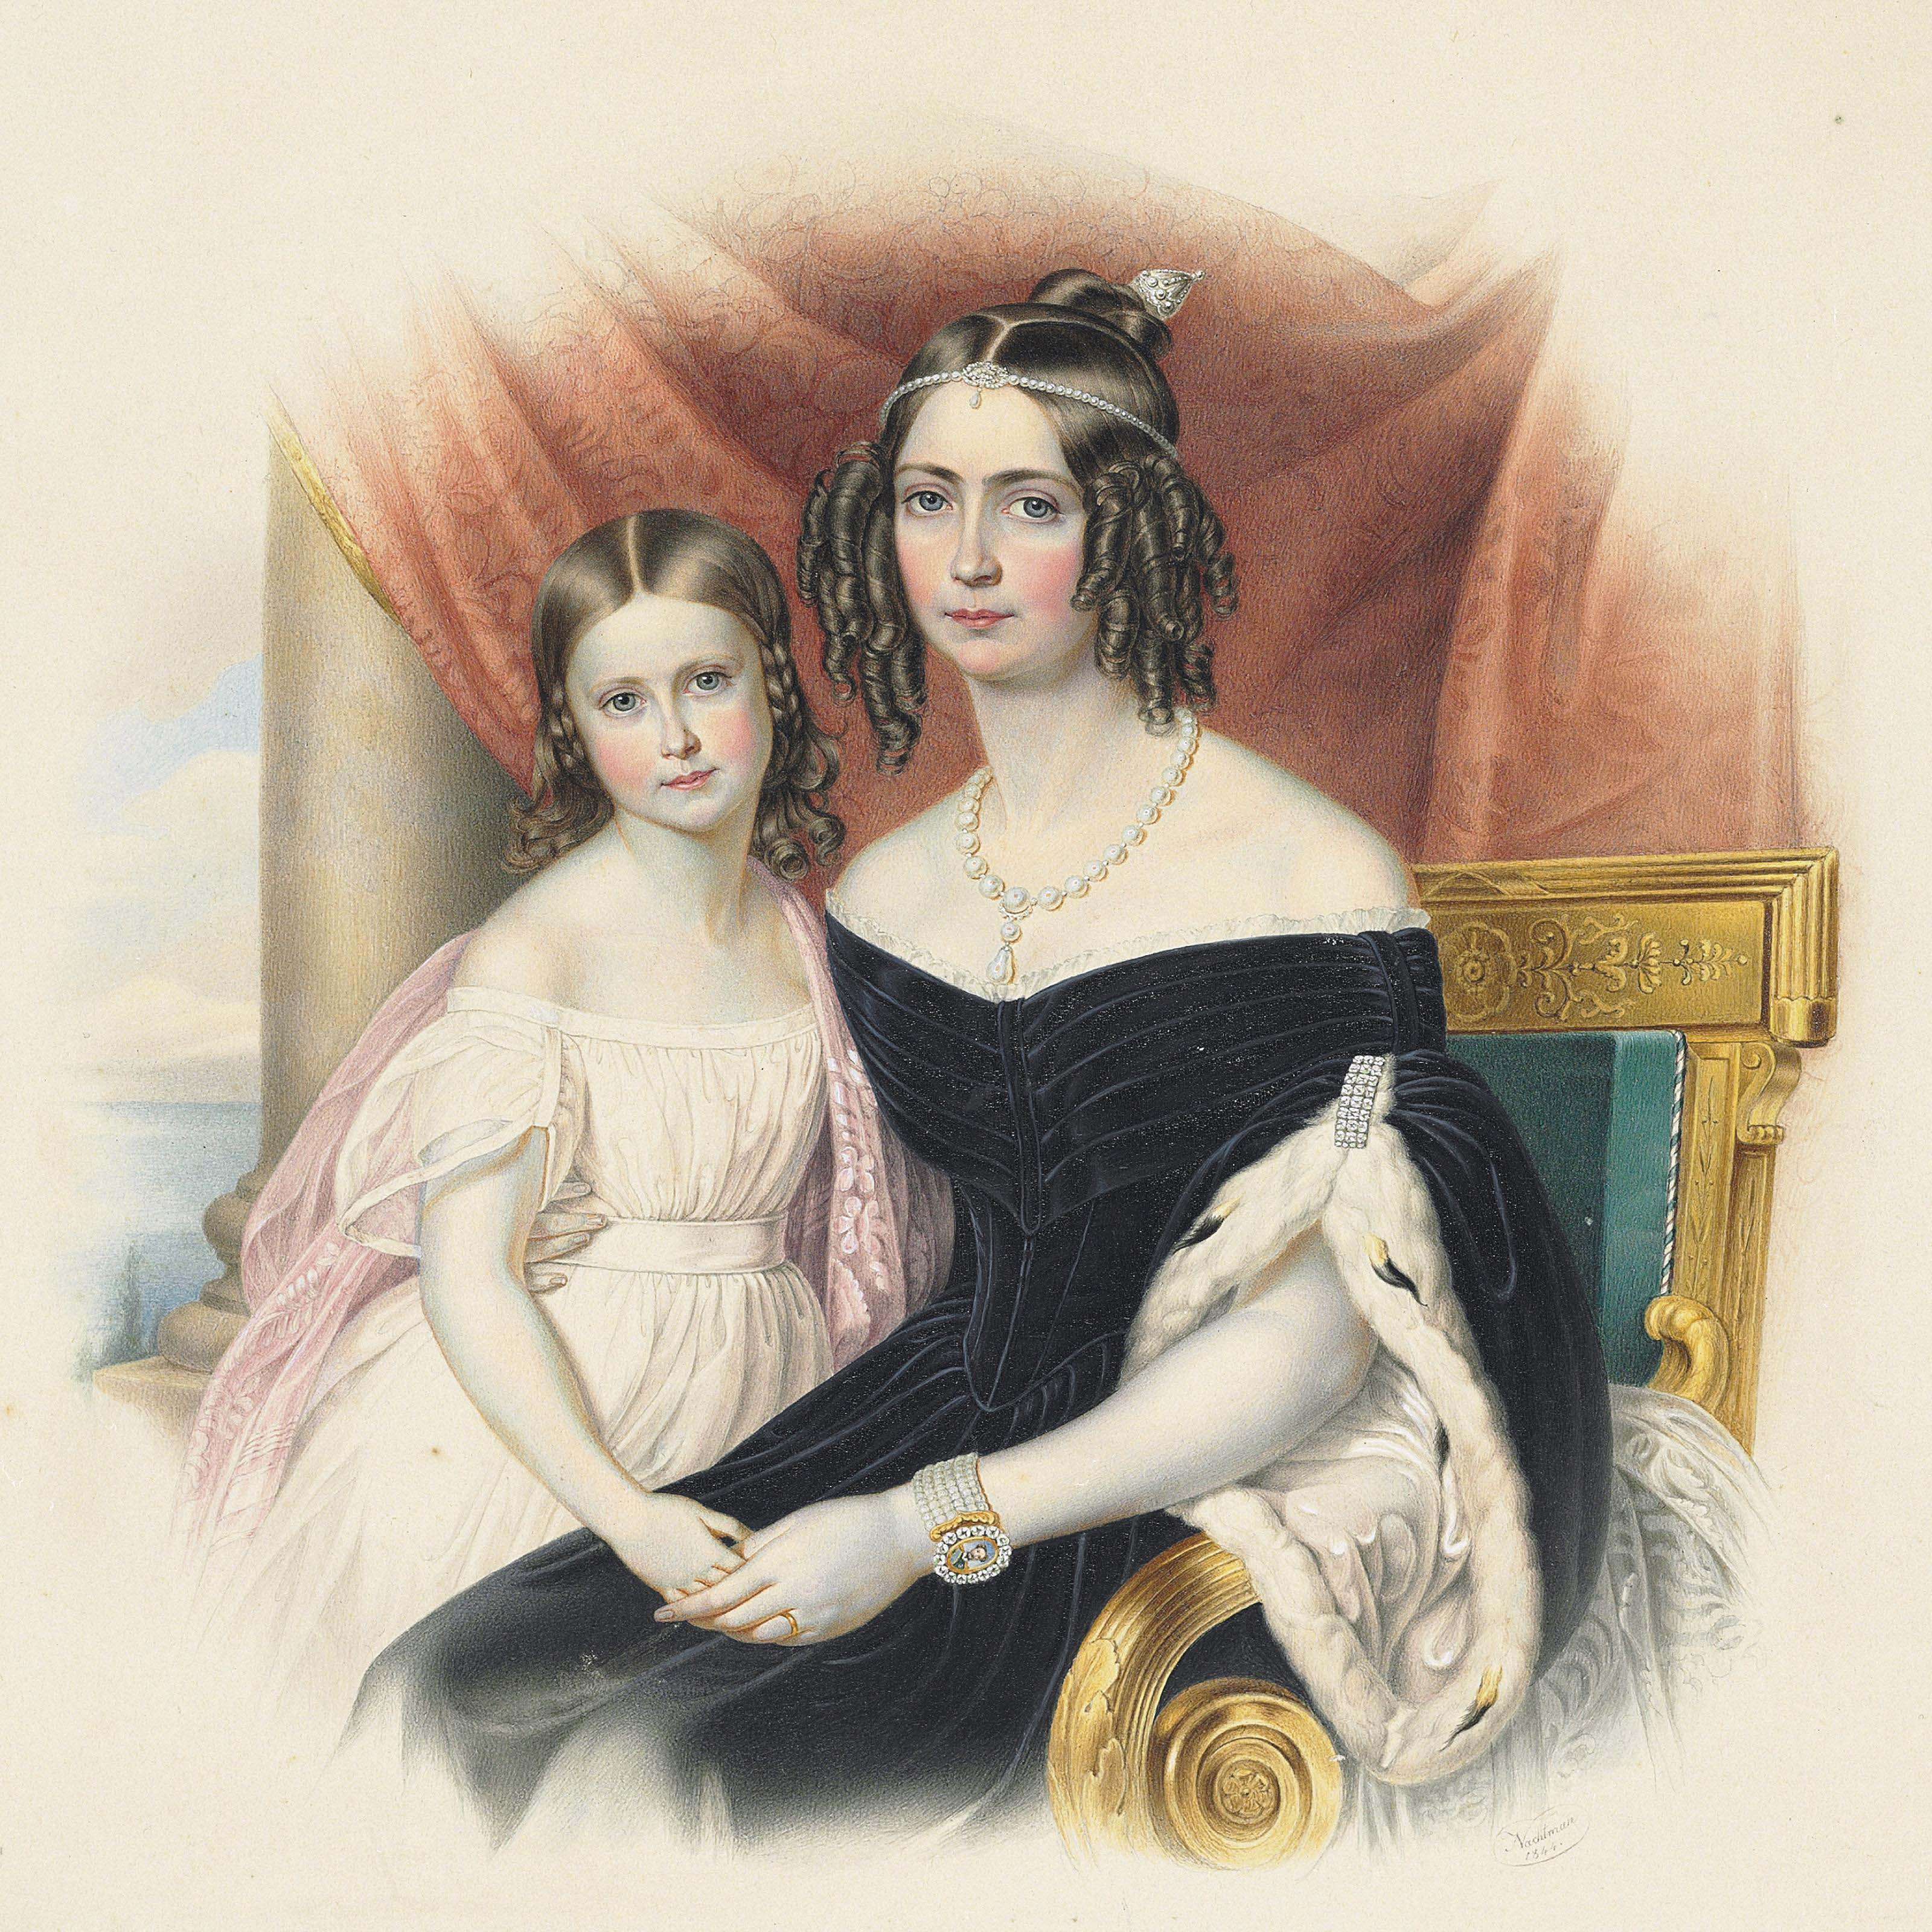 Portrait of Empress Amélie-Auguste-Eugenie of Brazil with her daughter Marie-Amélie-Auguste